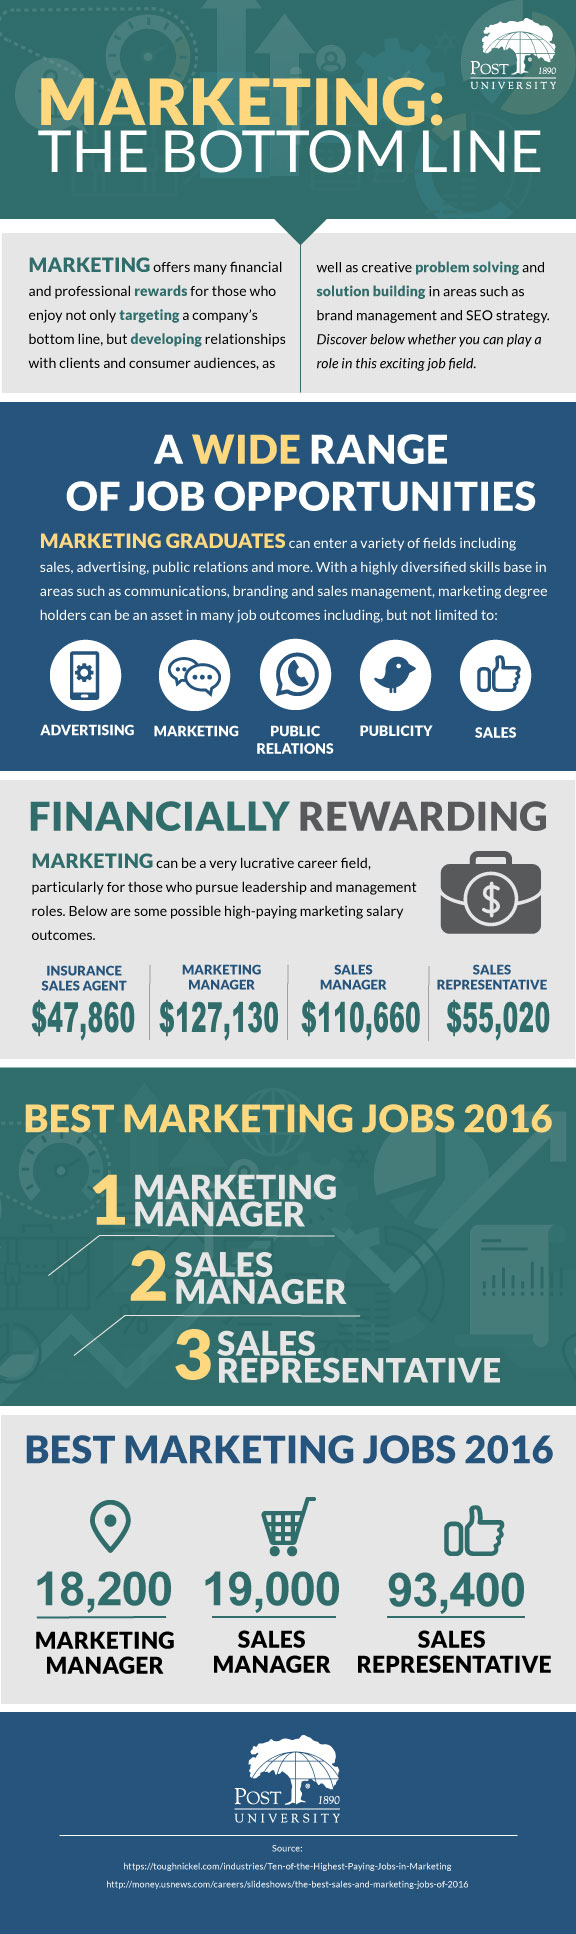 Marketing Benefits Infographic